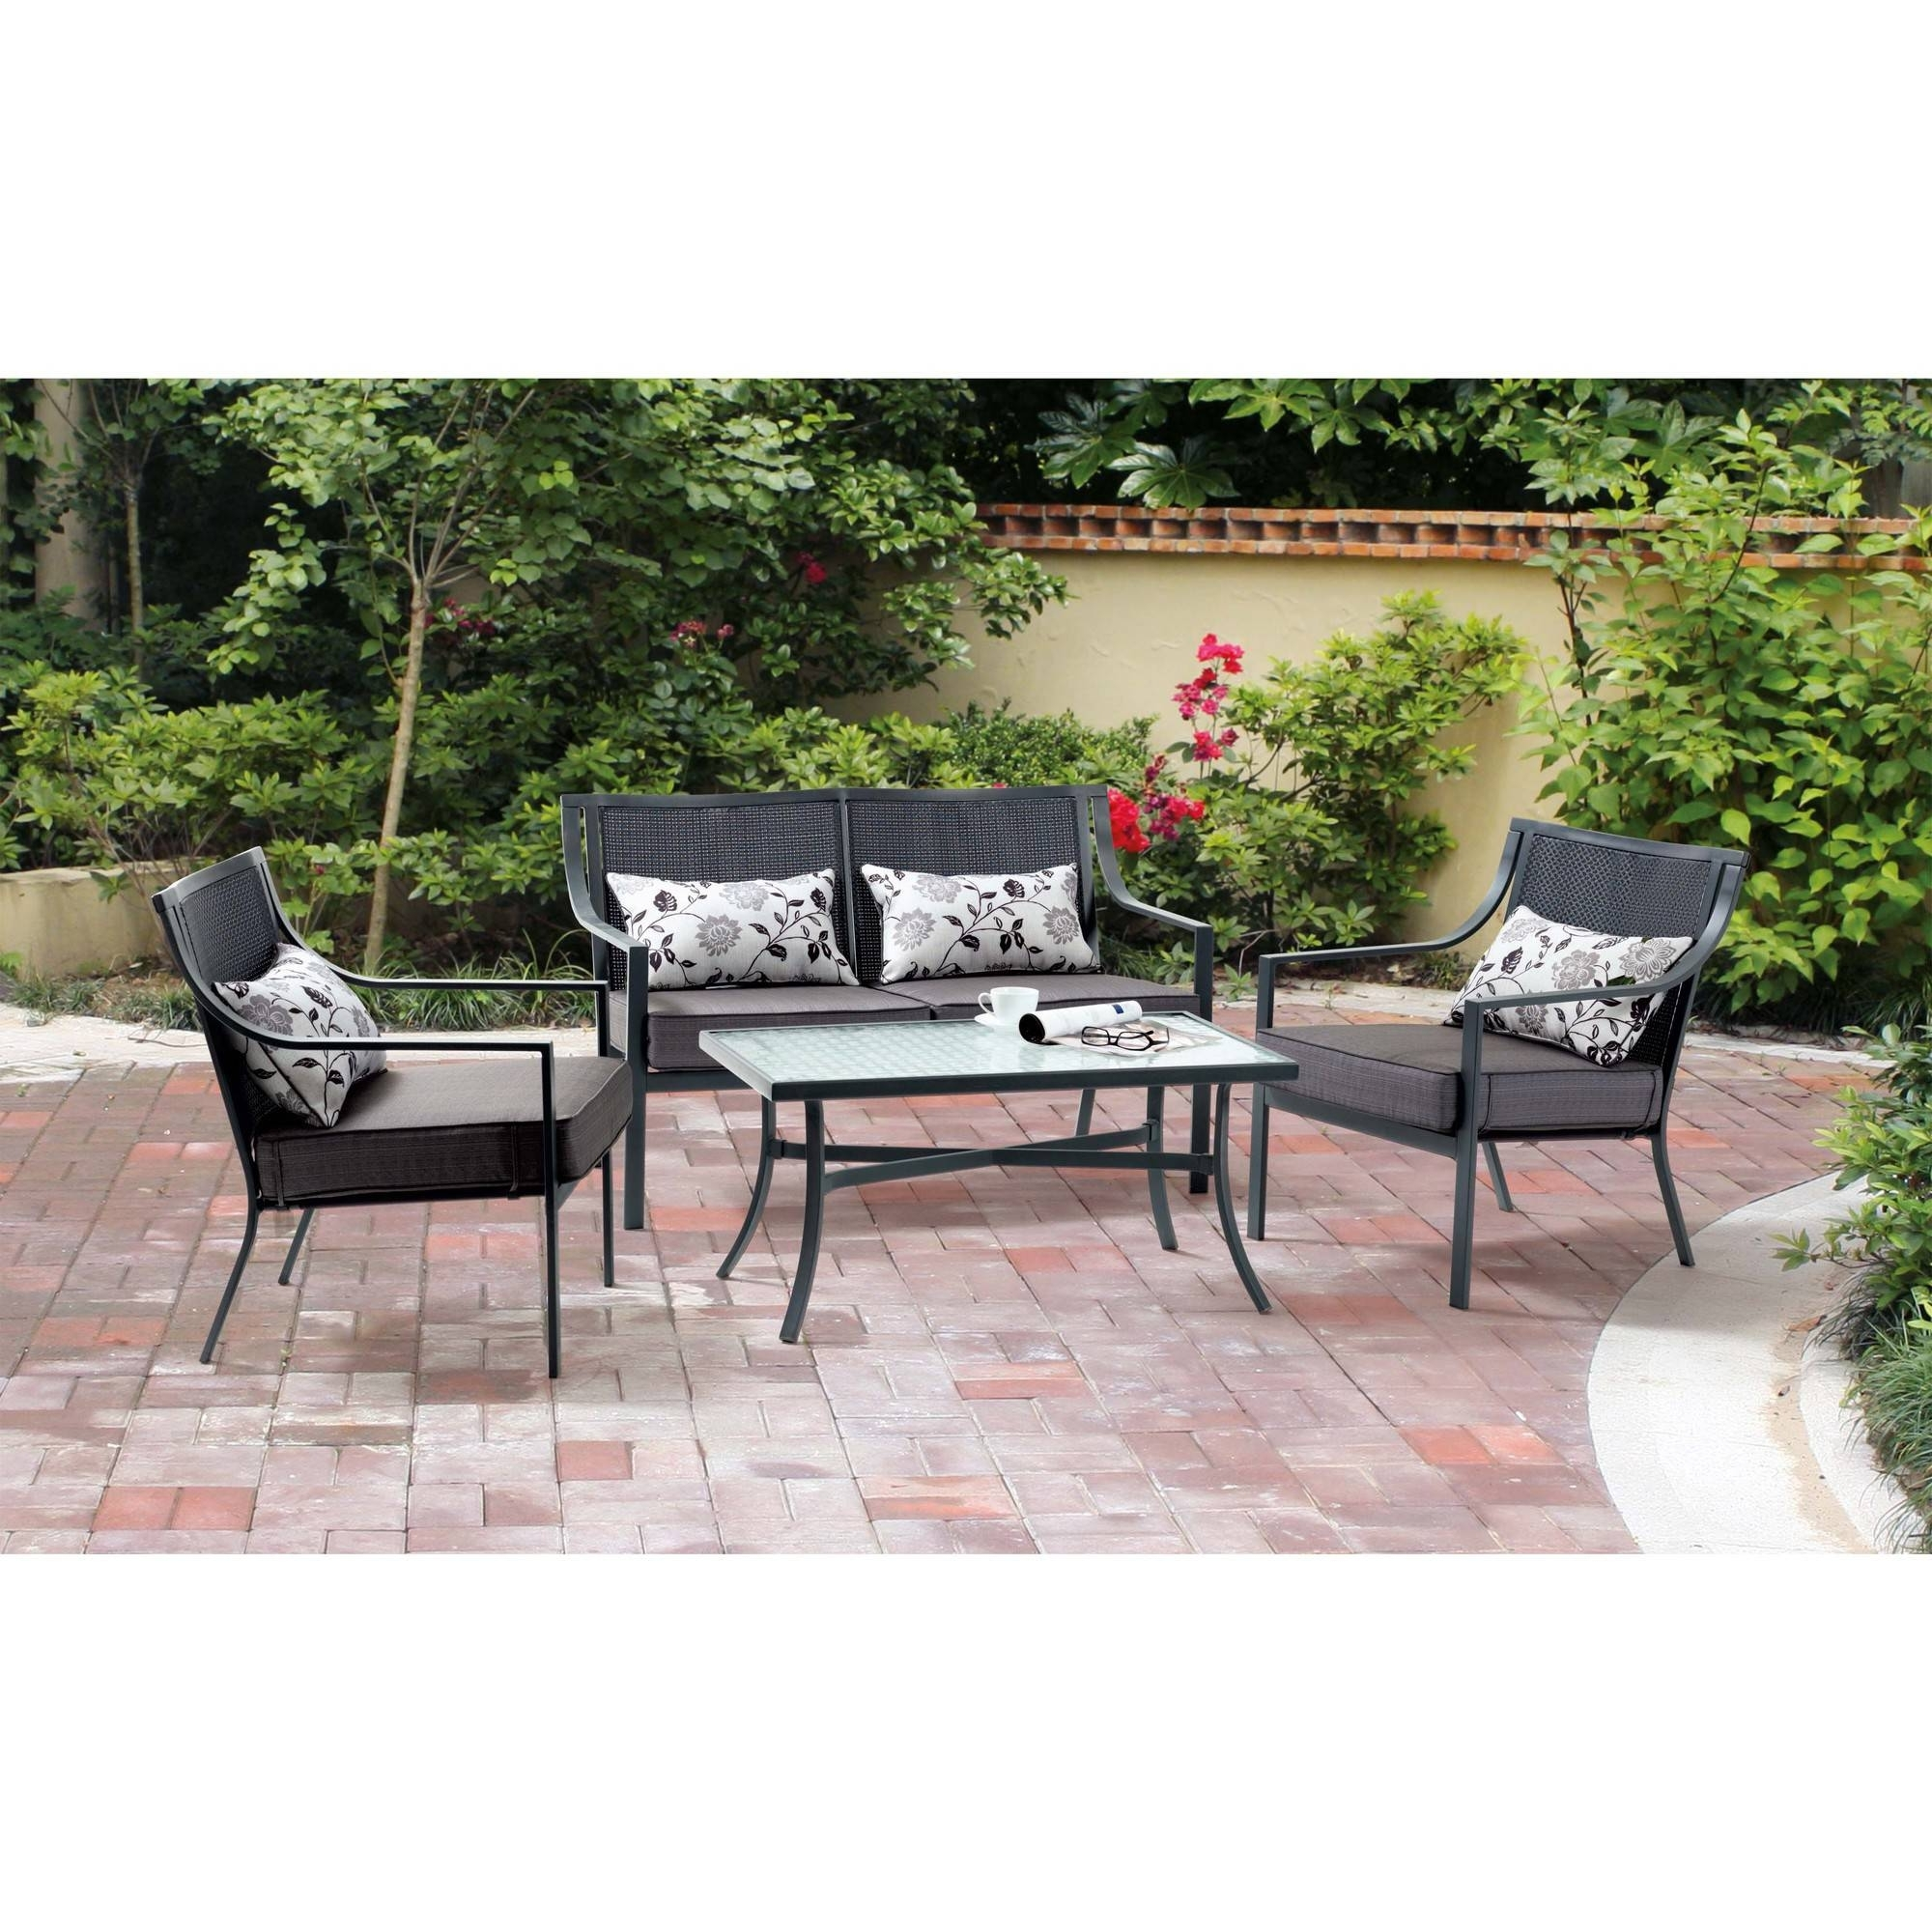 Preferred Mainstays Alexandra Square 4 Piece Patio Conversation Set, Grey With With Regard To Resin Conversation Patio Sets (View 11 of 20)